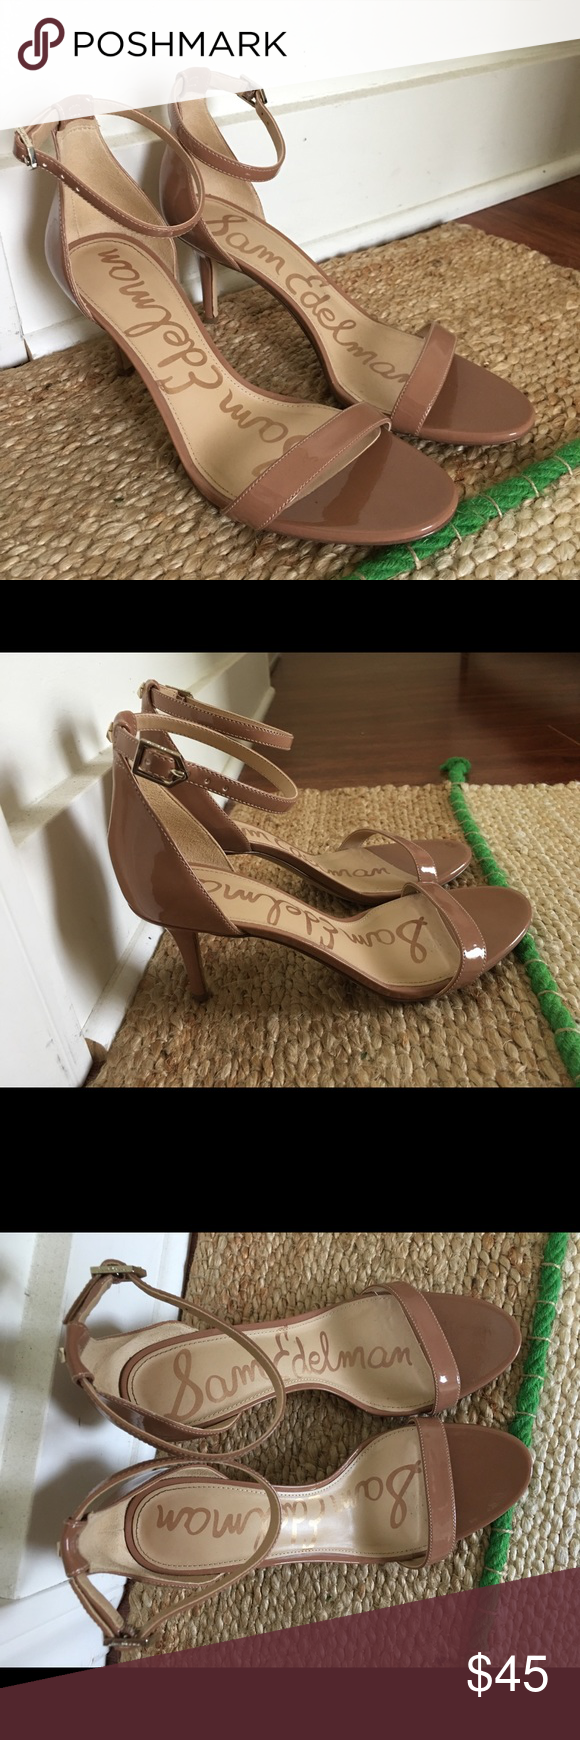 5a1c730cbfc Sam Edelman Patti Ankle Strap Sandals Classic and classy patent sandals.  The color is called